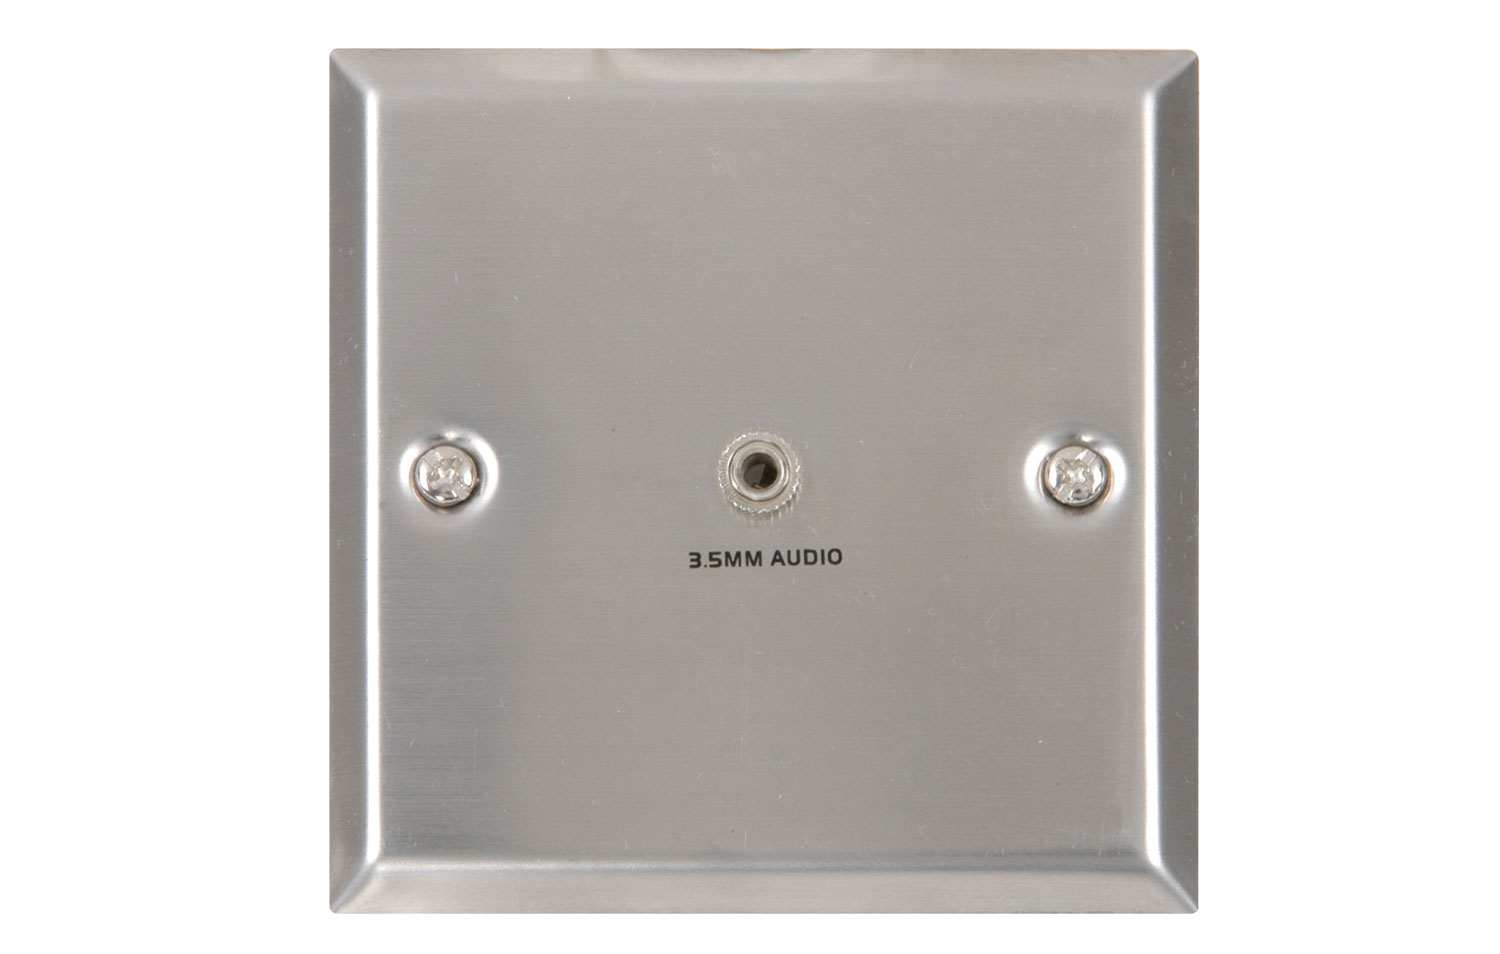 3.5mm audio wallplate white